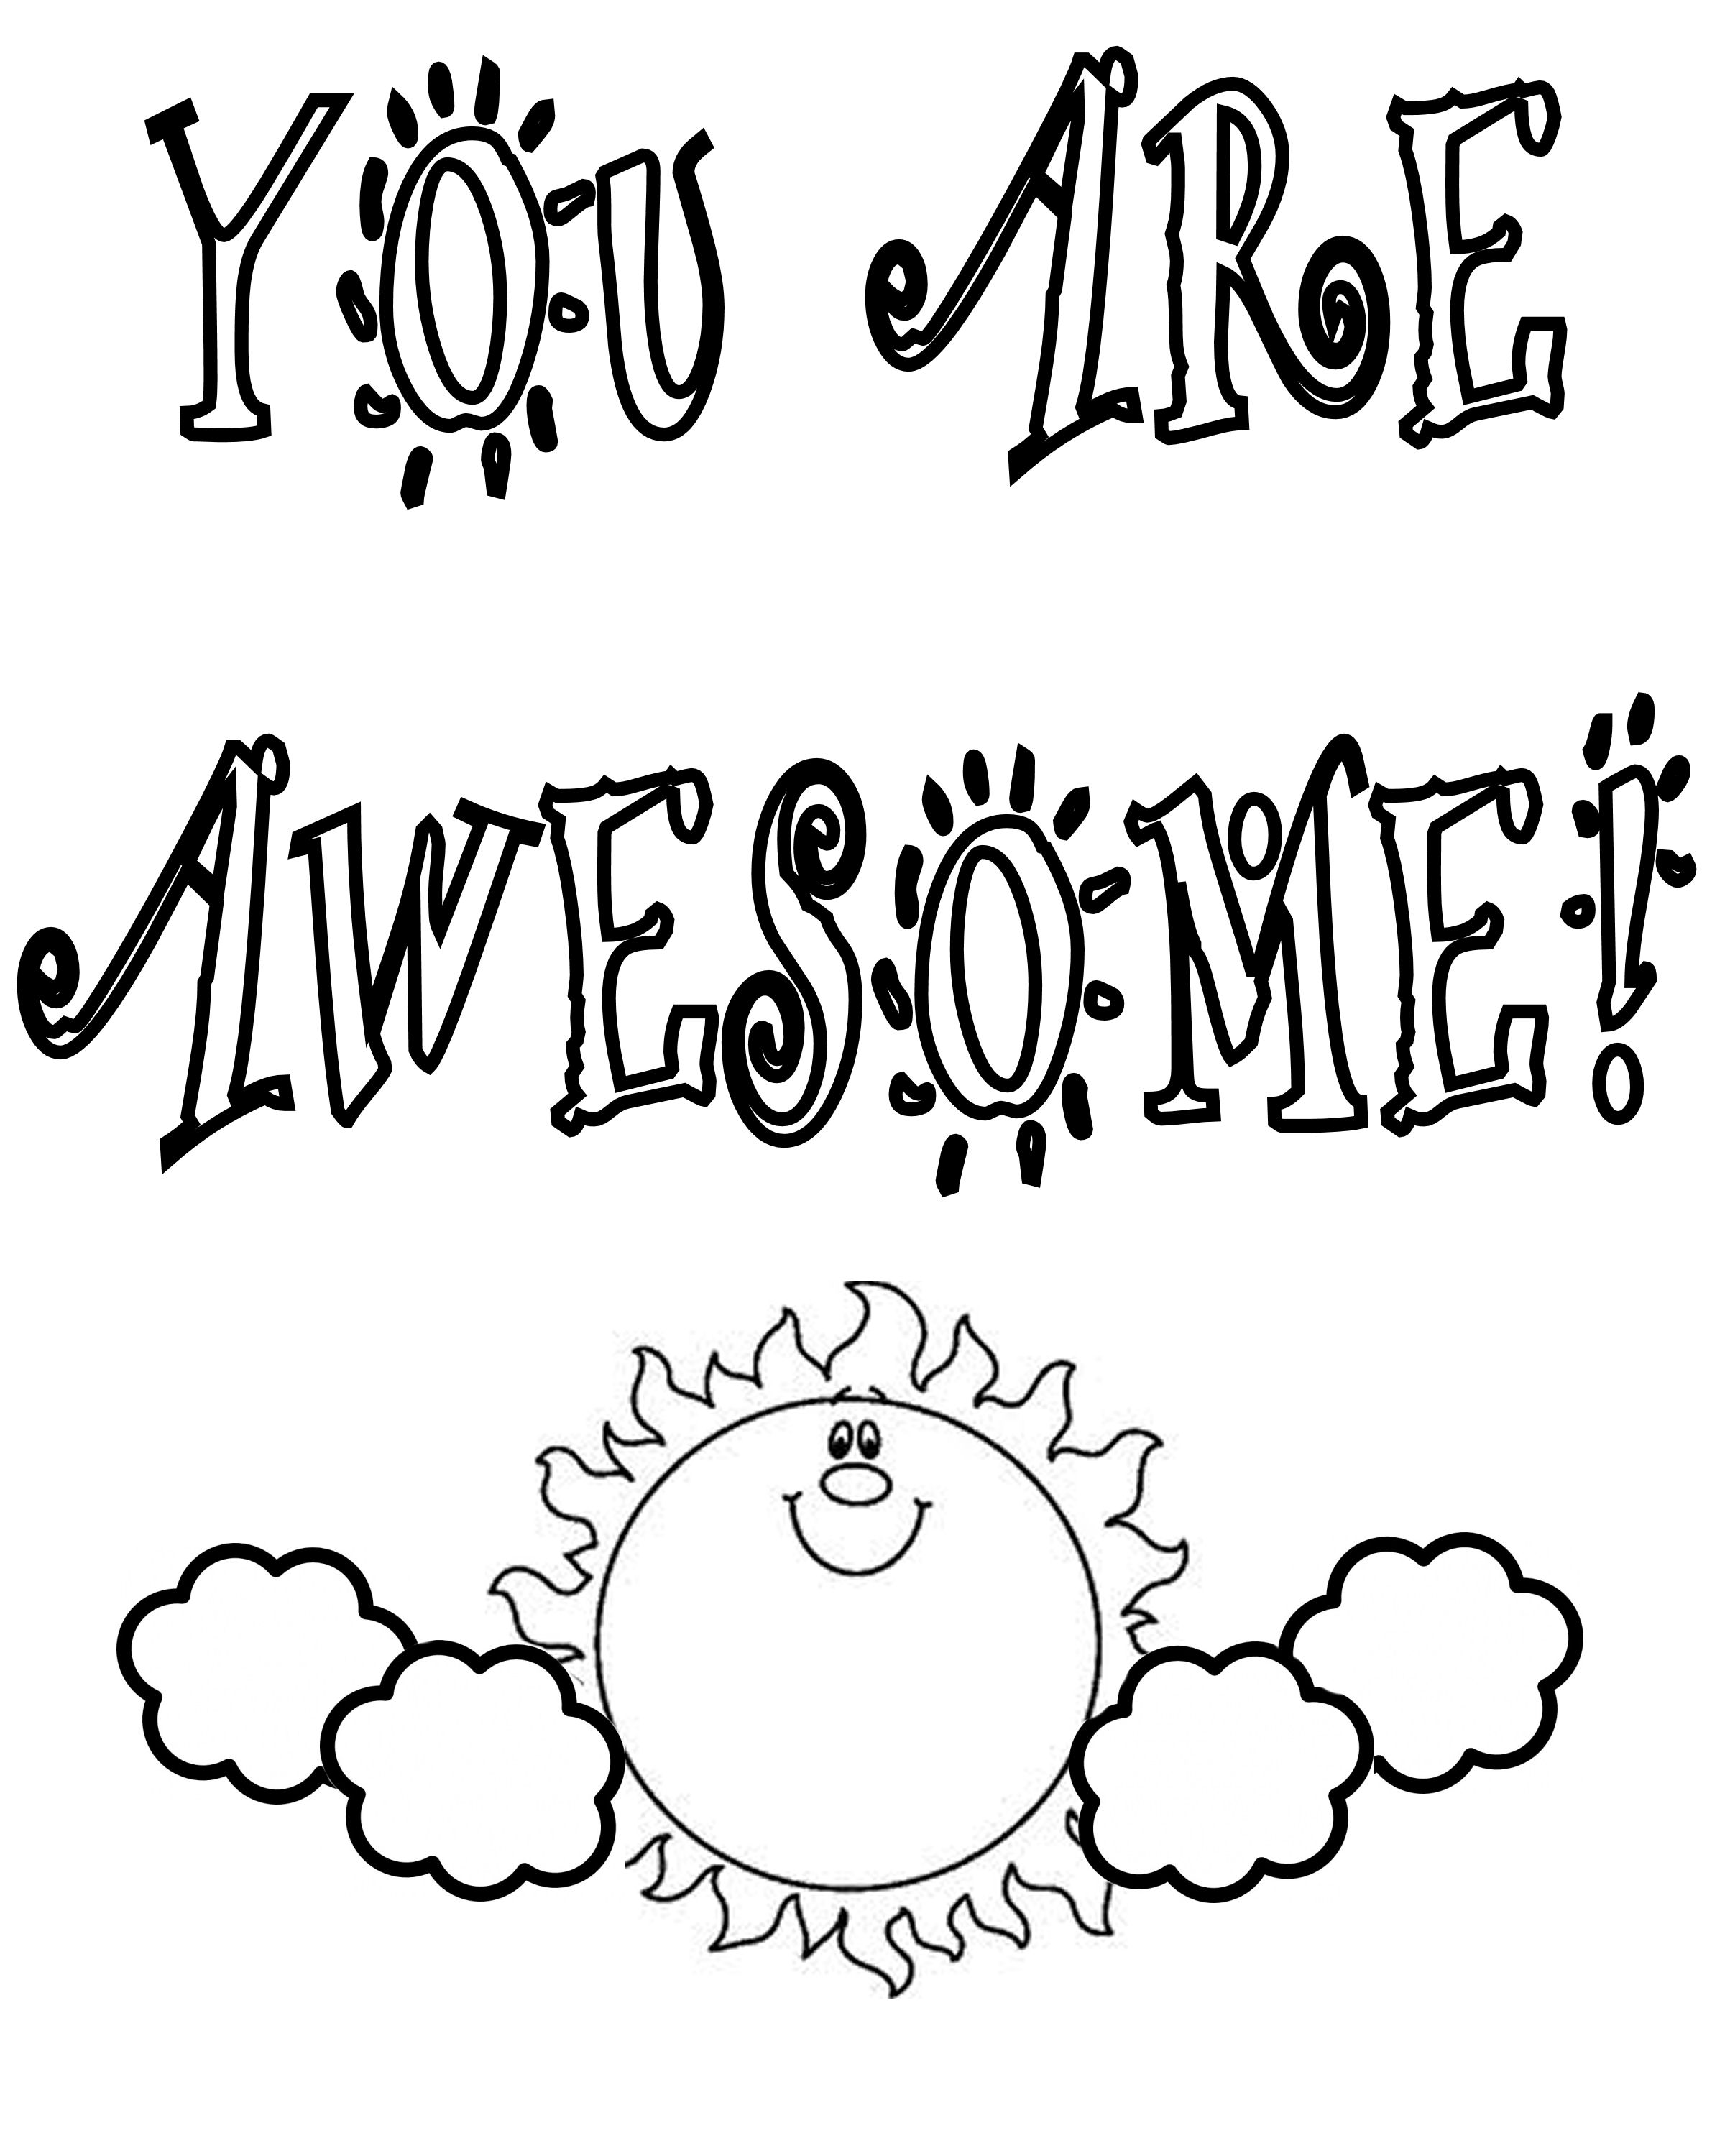 2400x3000 Worlds Best Teacher Diploma Coloring Page